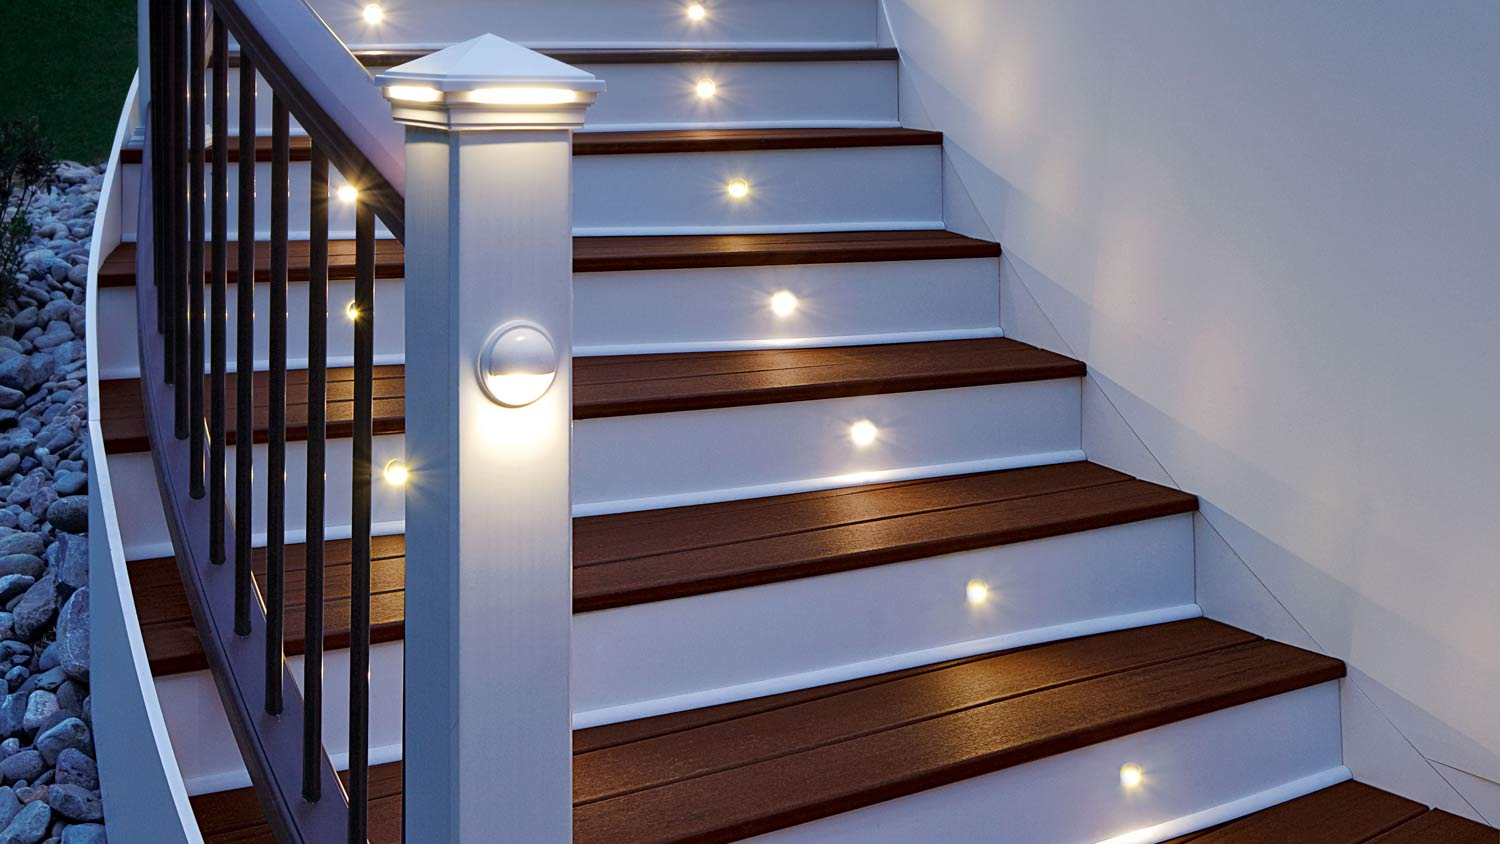 Stair Lighting, Like Recessed Riser Lights, Rail Lighting, Or Path Lighting  Are All Great For Keeping The Night Eventful... For All The Right Reasons.